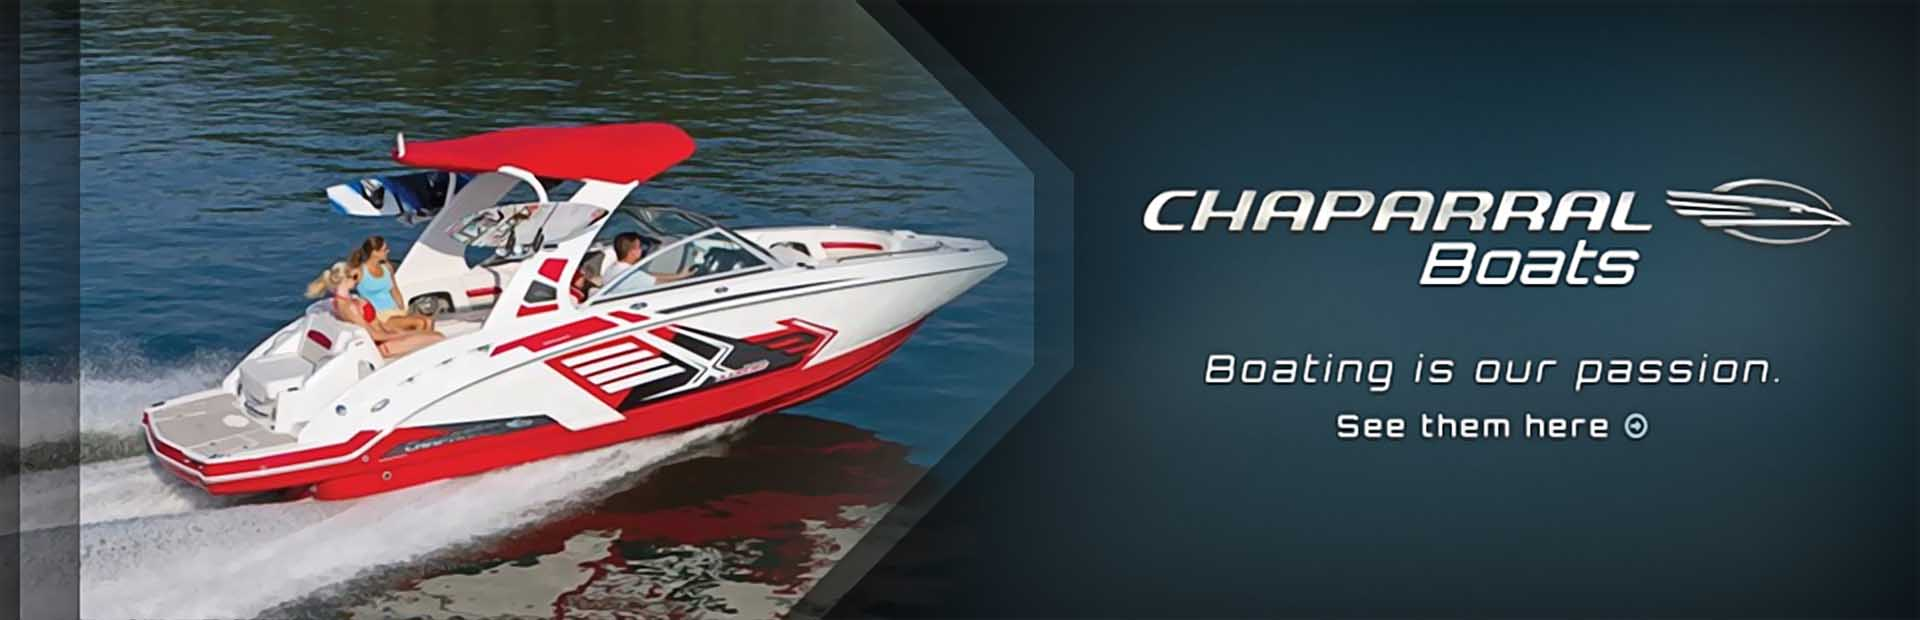 Chaparral Boats: Click here to view the lineup.